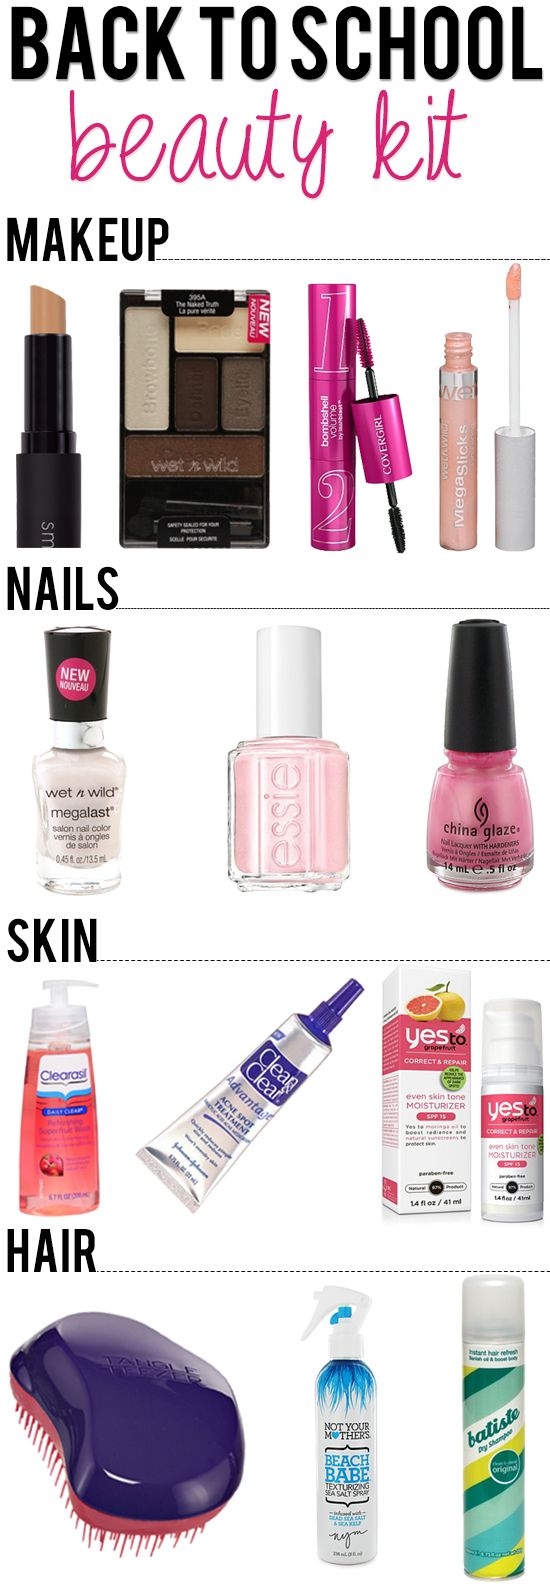 All the things you need to accentuate your natural beauty